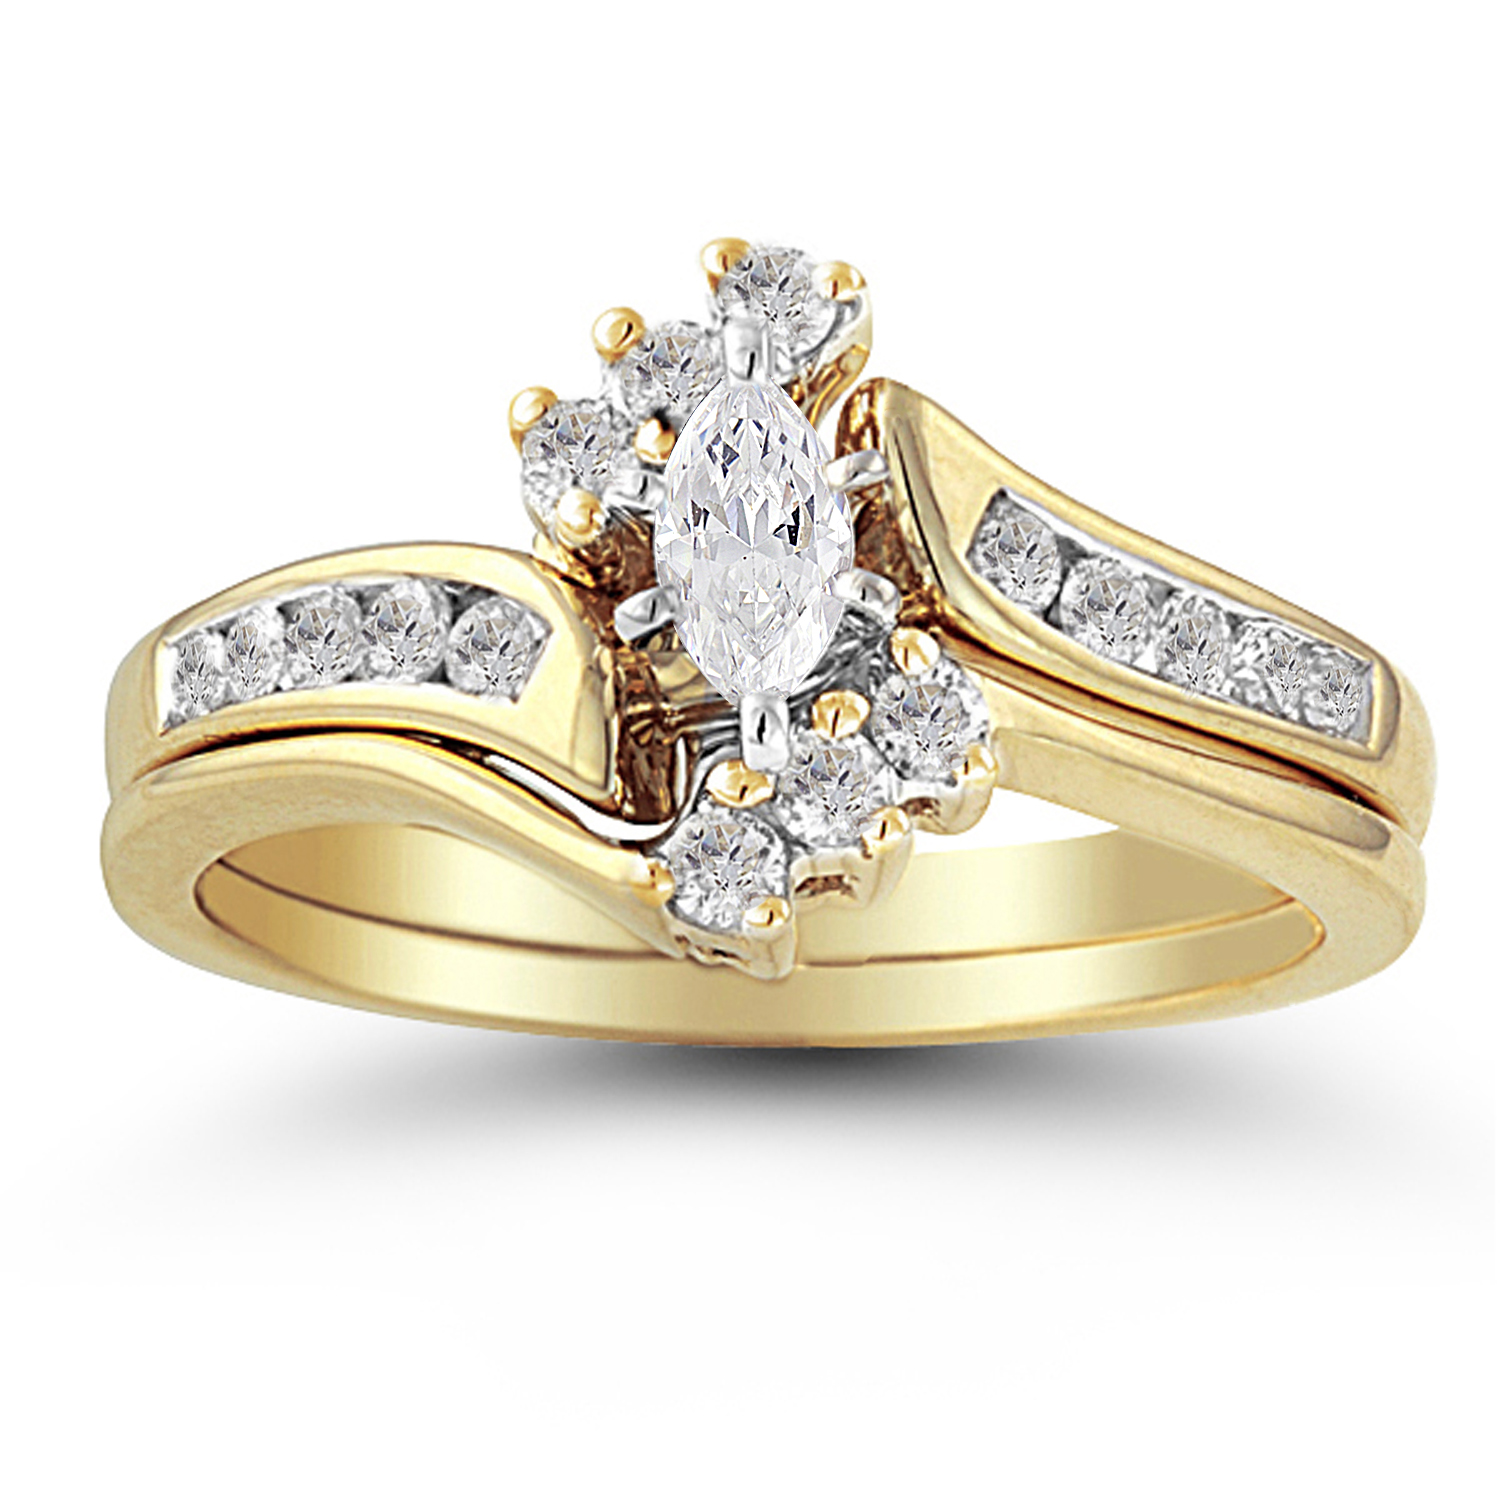 10k yellow gold 38 ctw diamond marquise halo top wedding set amdtac mw9310 mqd 016